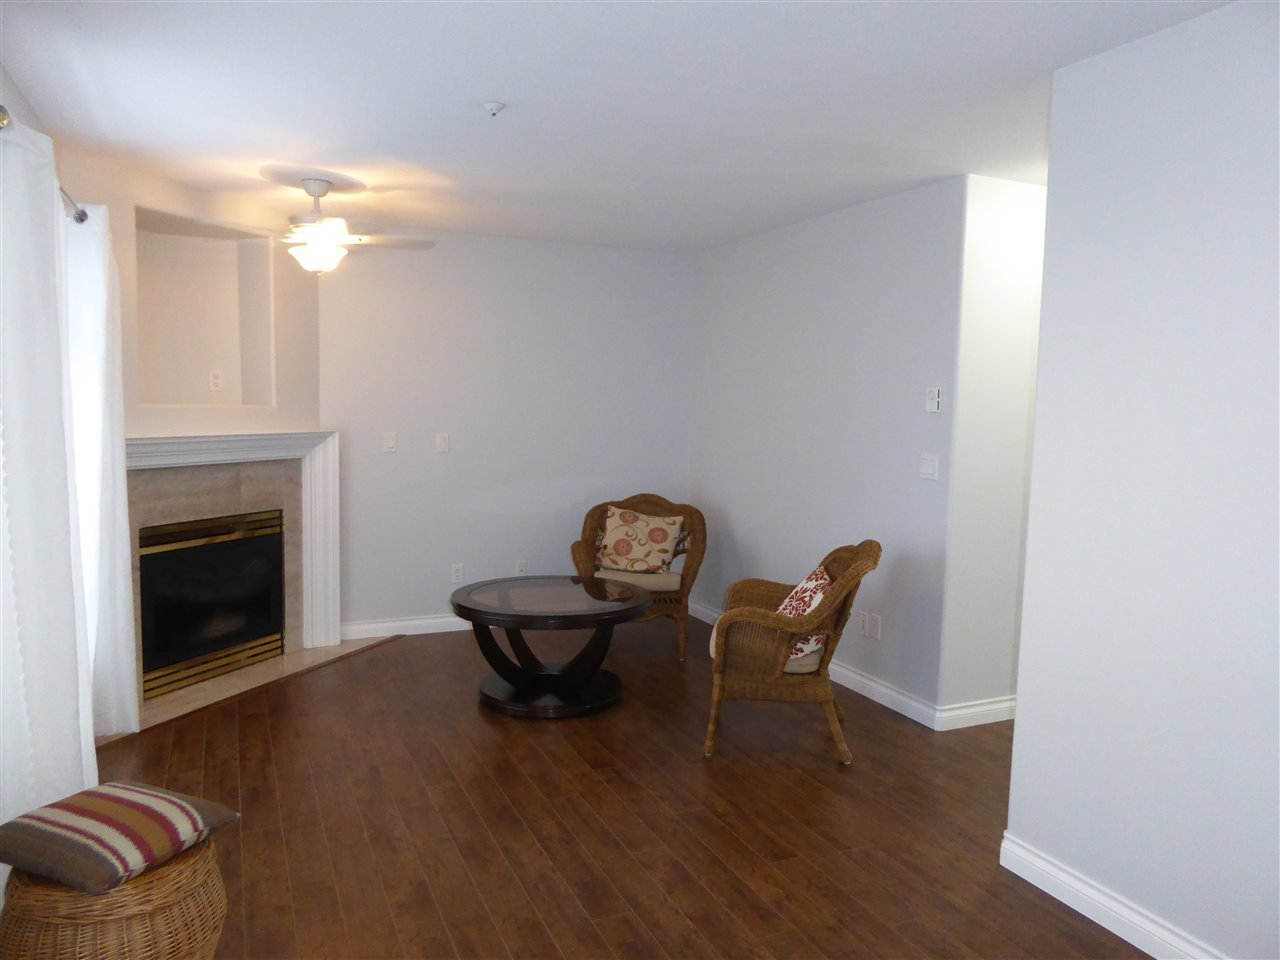 """Photo 8: Photos: 7 2538 PITT RIVER Road in Port Coquitlam: Mary Hill Townhouse for sale in """"RIVER COURT"""" : MLS®# R2392778"""